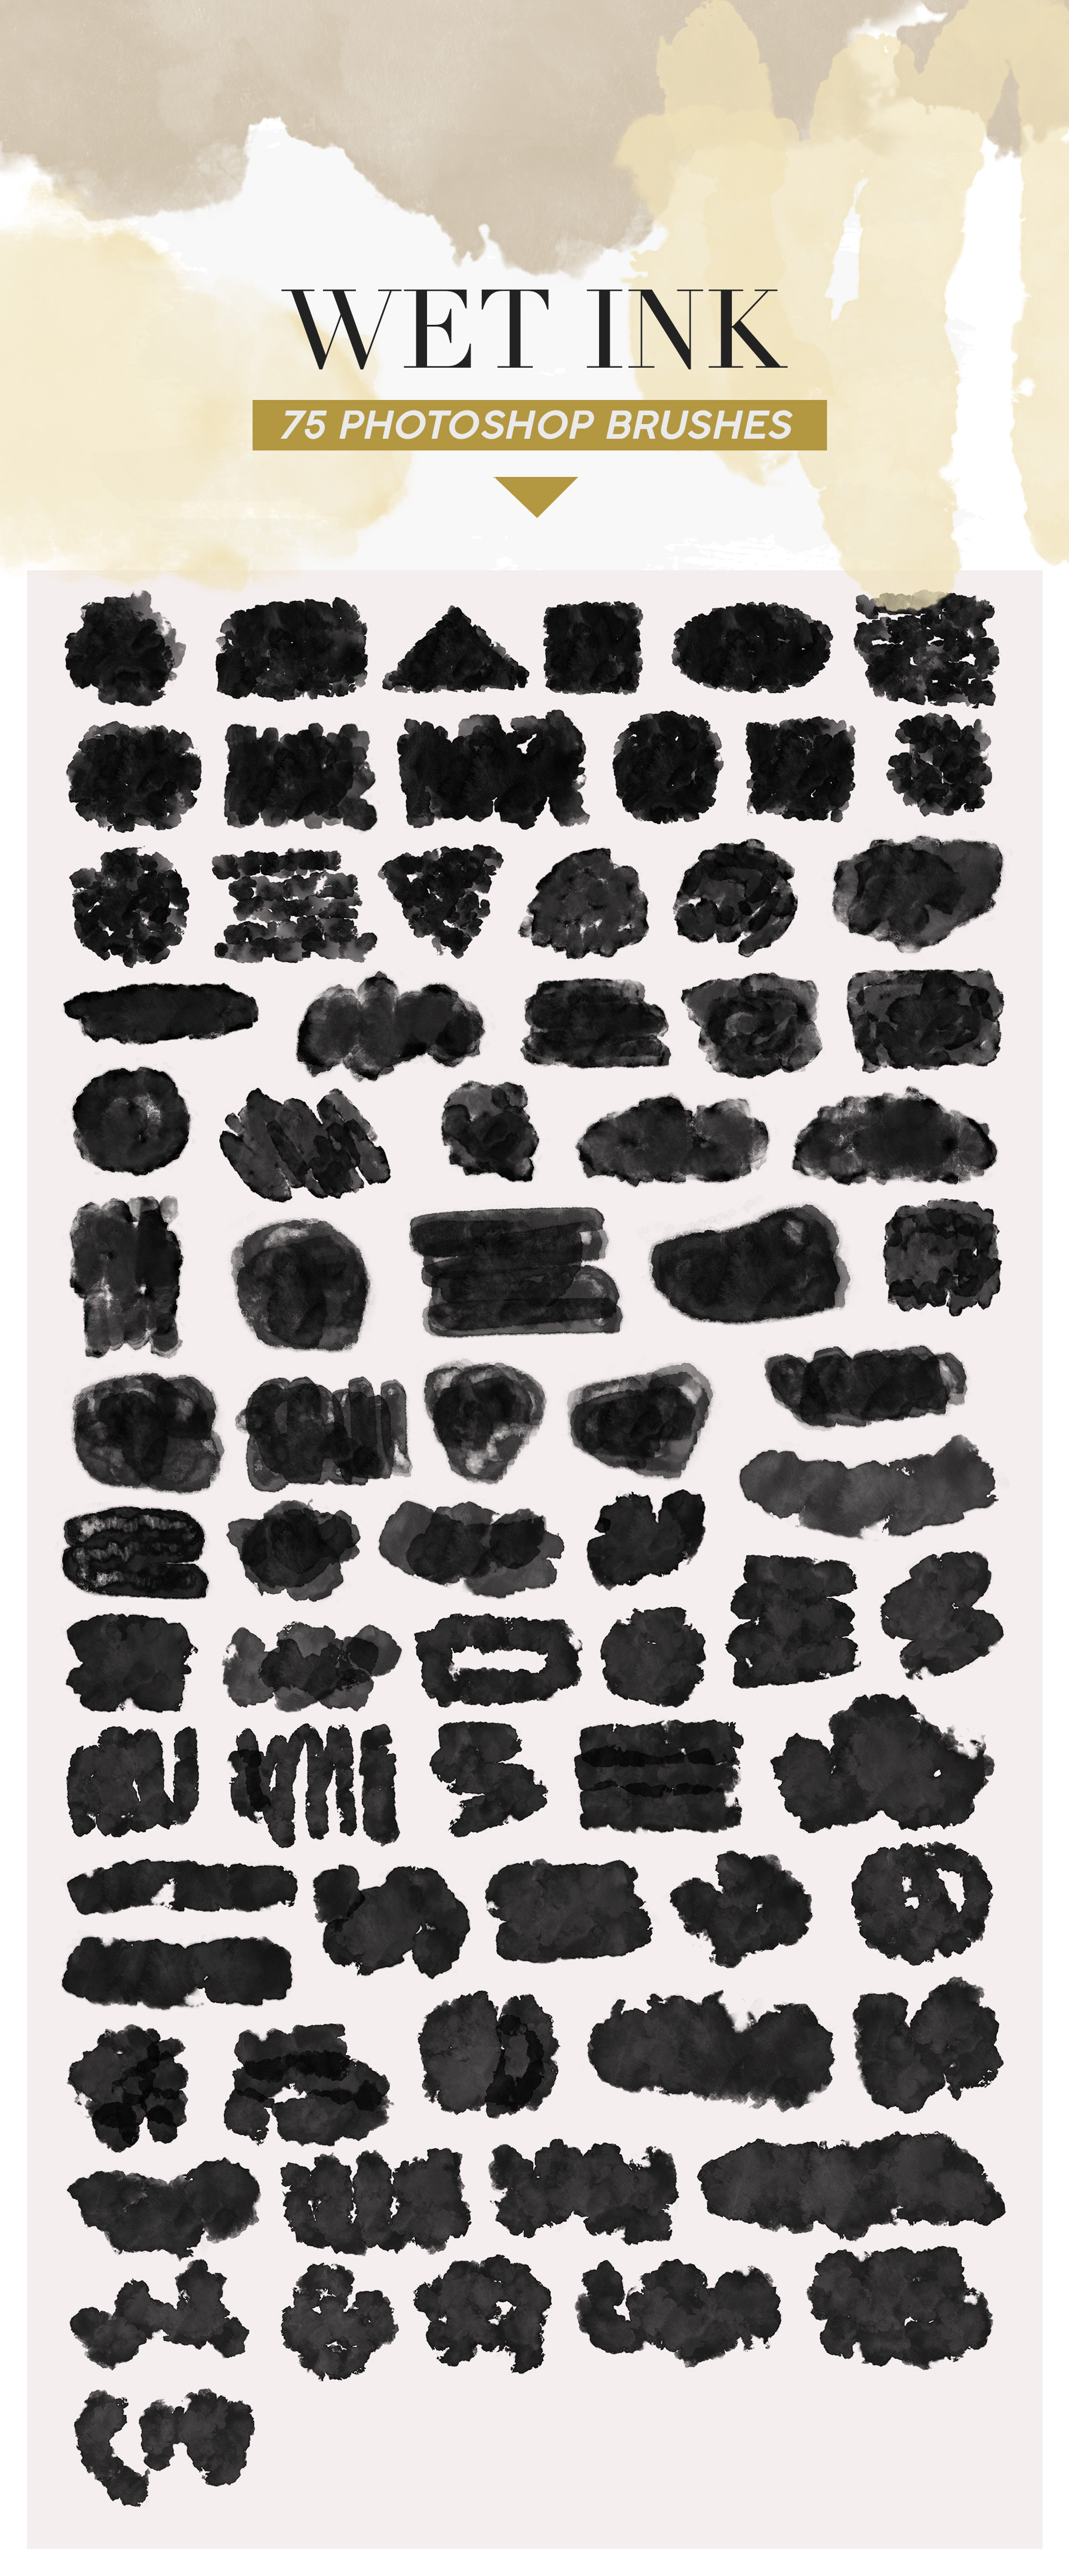 487 Ink Shapes Photoshop Brushes example image 9